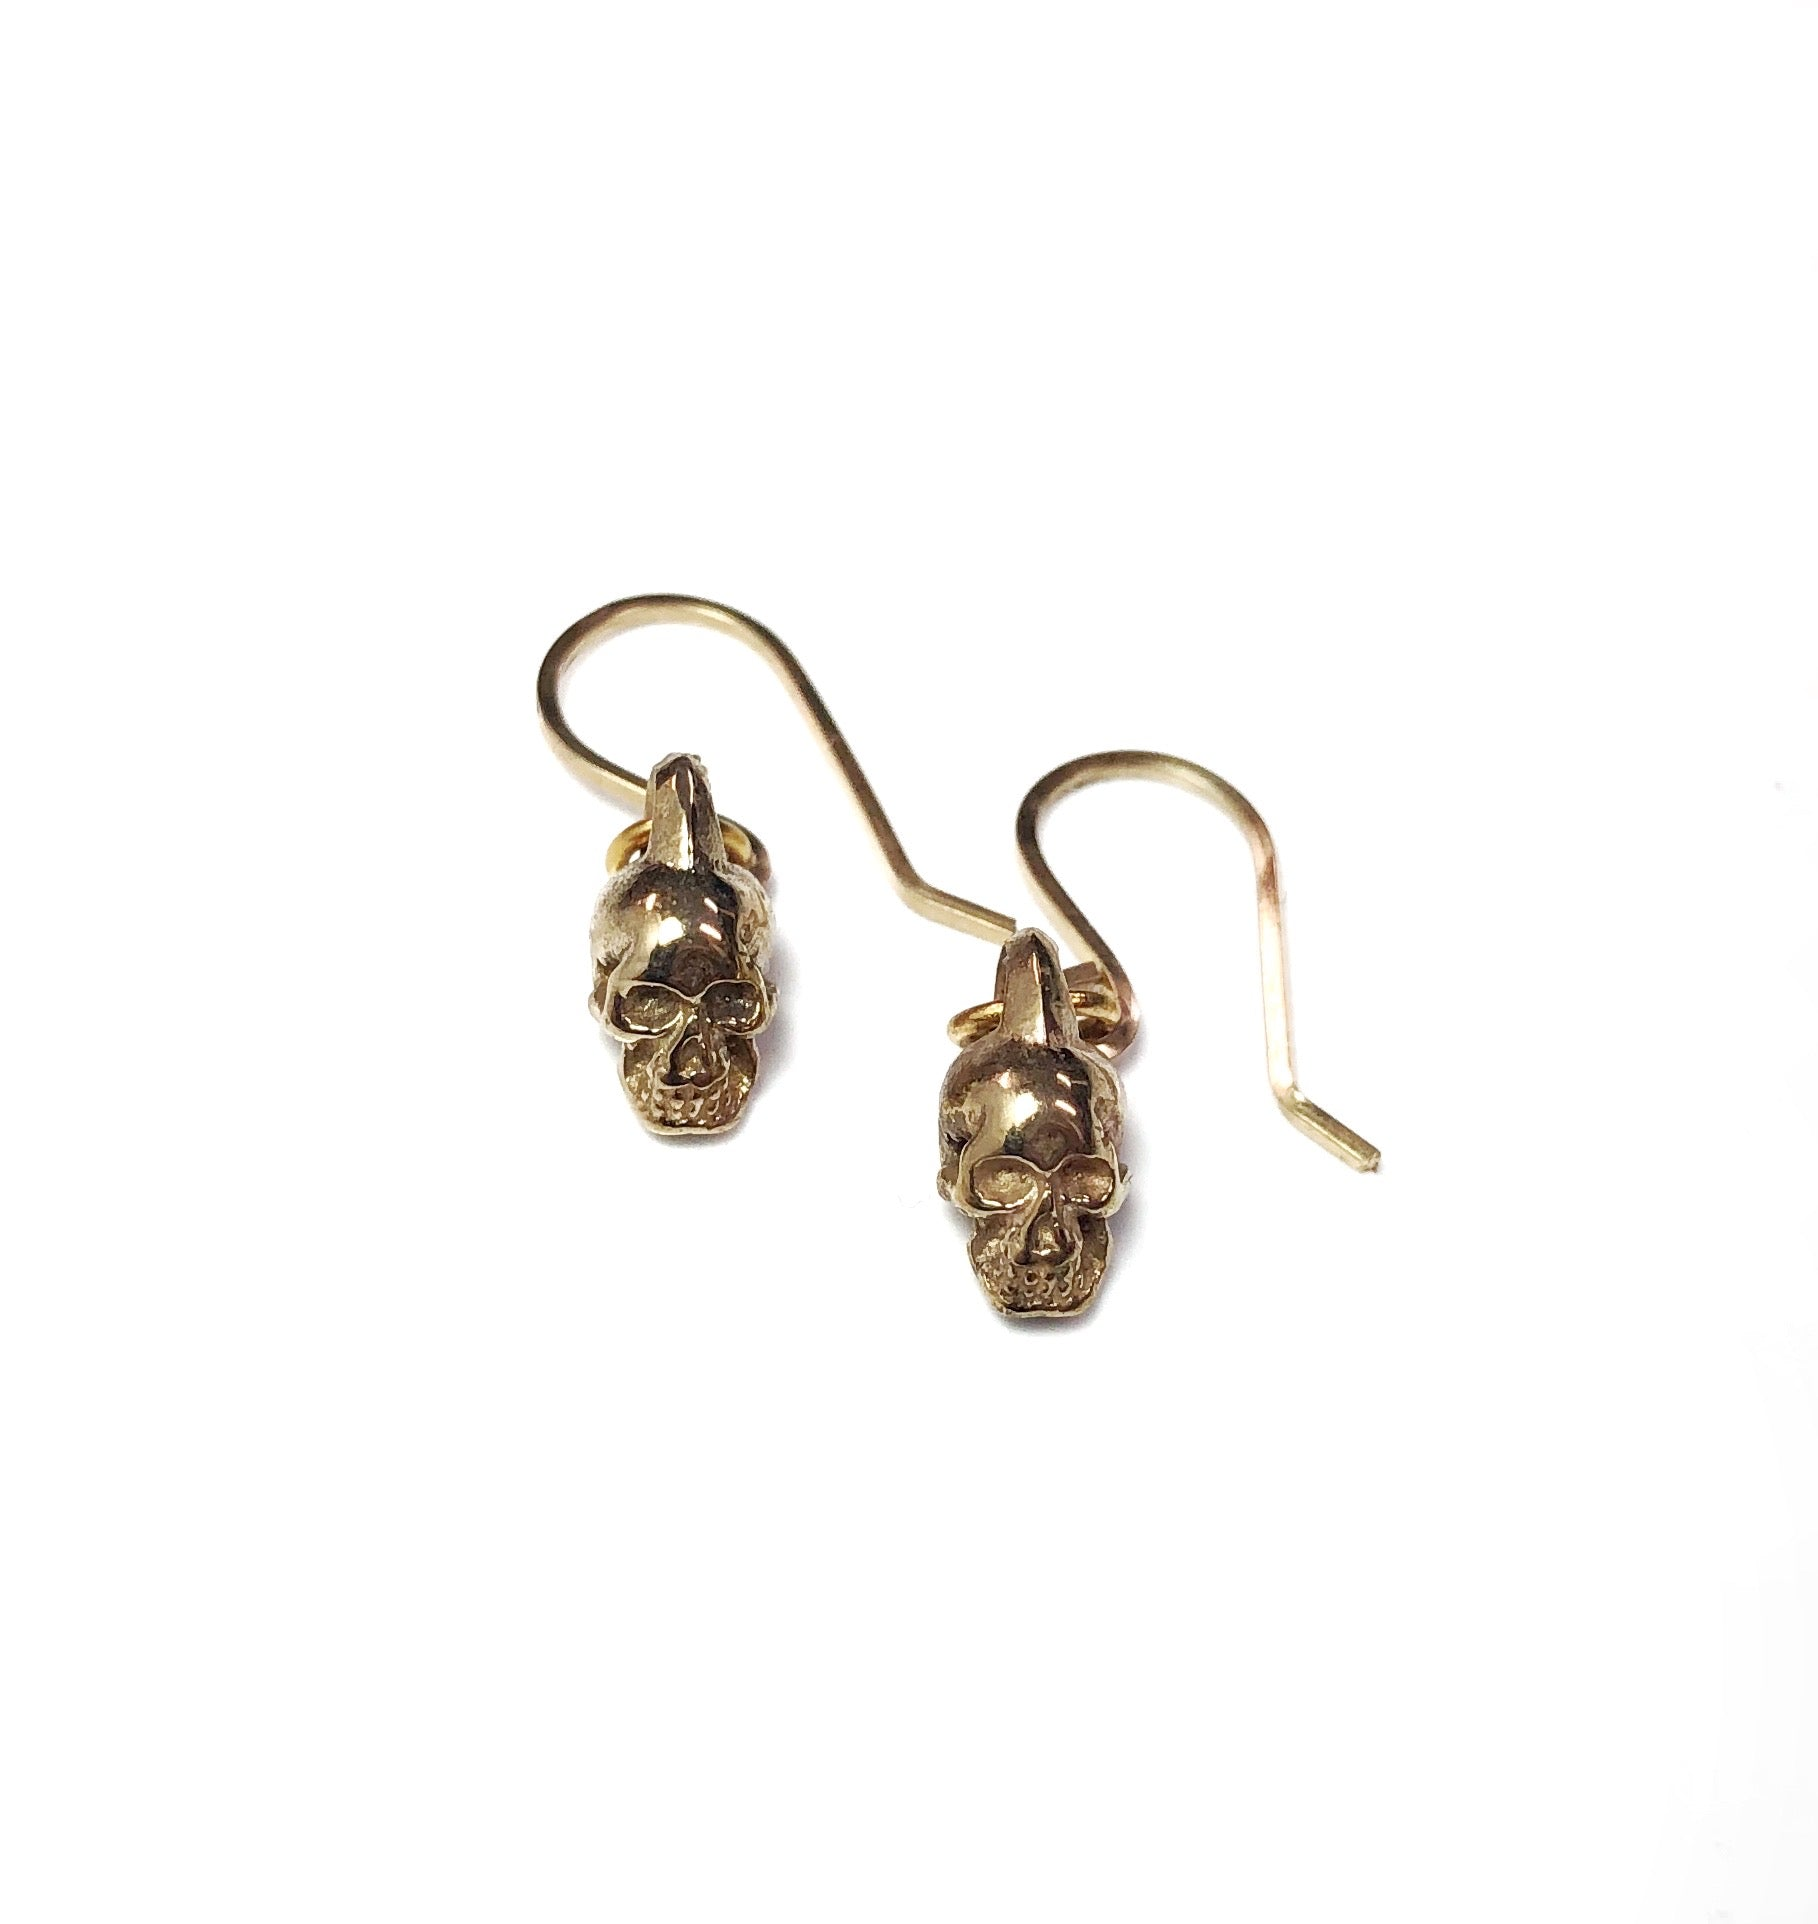 Miguel Earrings - Terry Schiefer